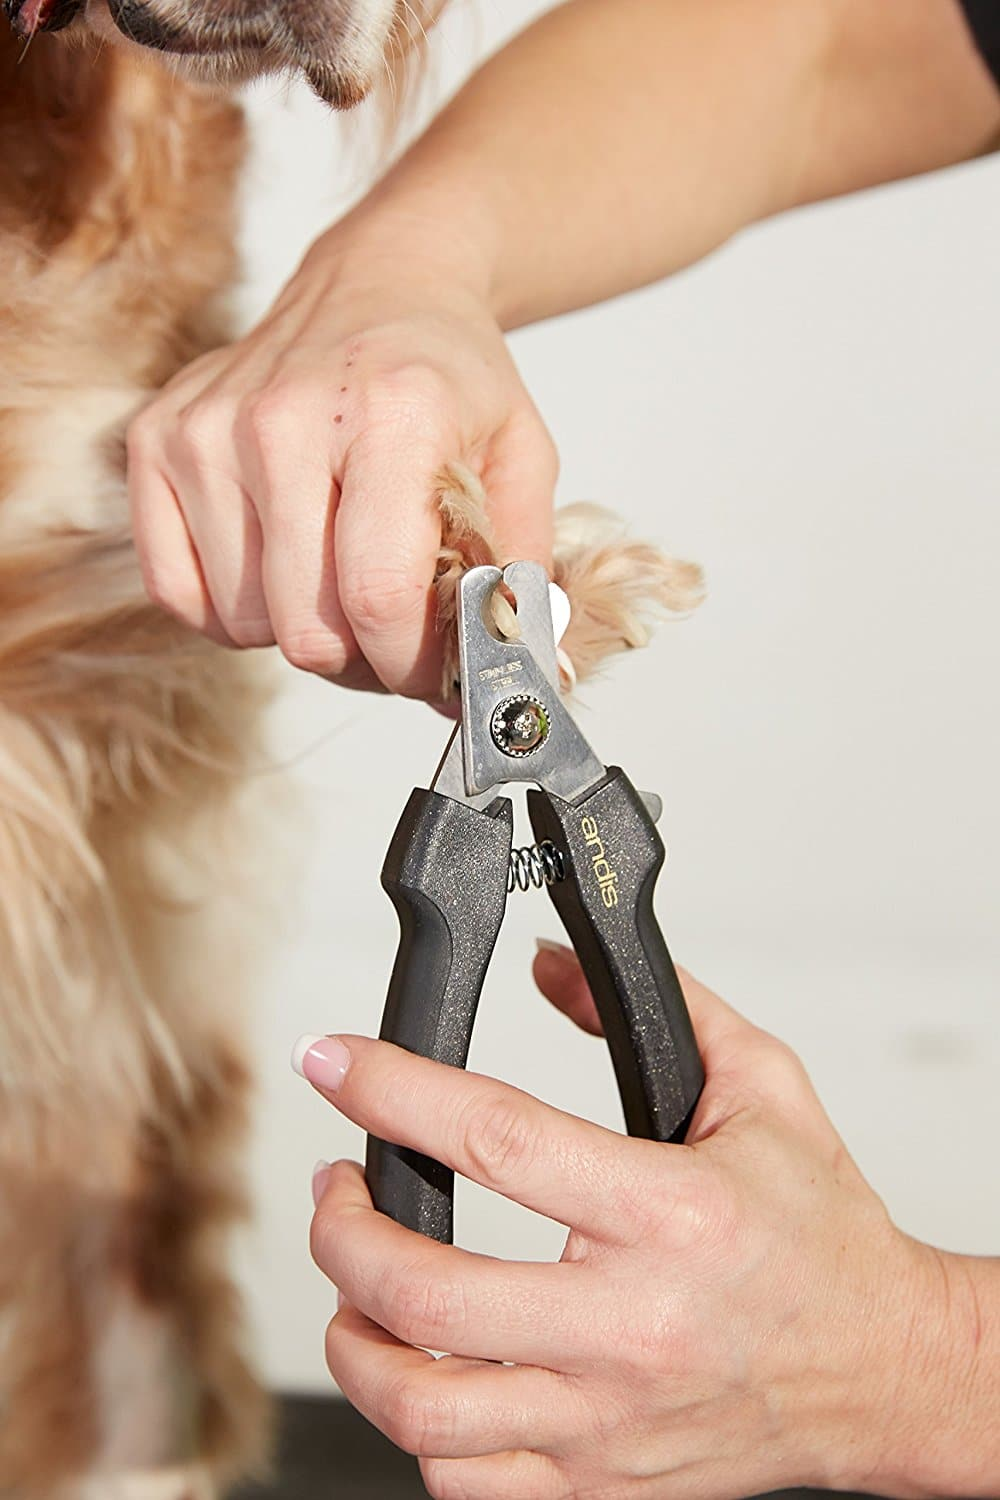 2018 Top 15 Nail Clippers for Dogs | Dr. Fox\'s Reviews & Advice